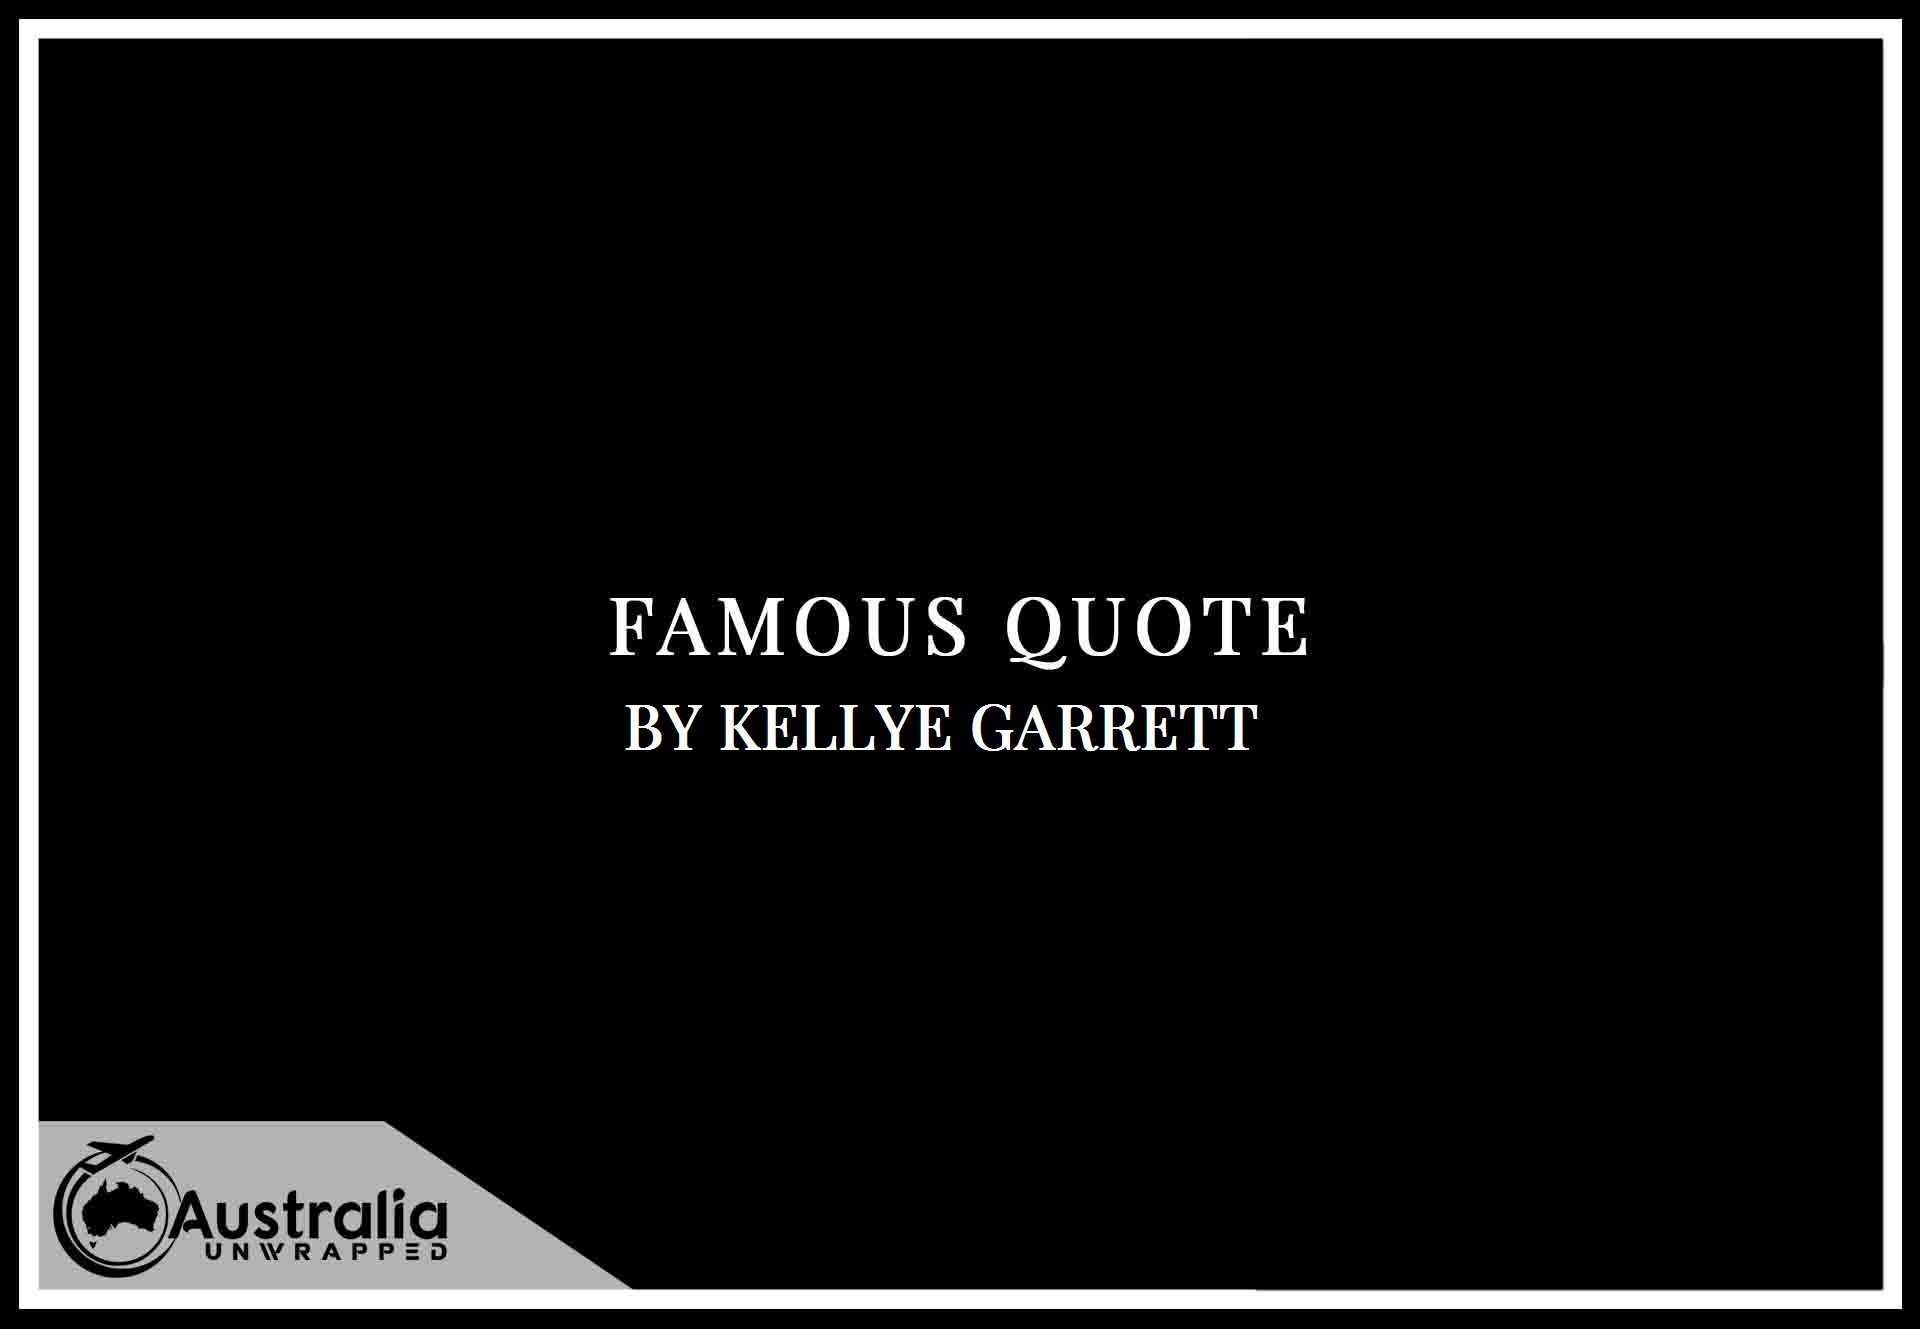 Kellye Garrett's Top 1 Popular and Famous Quotes